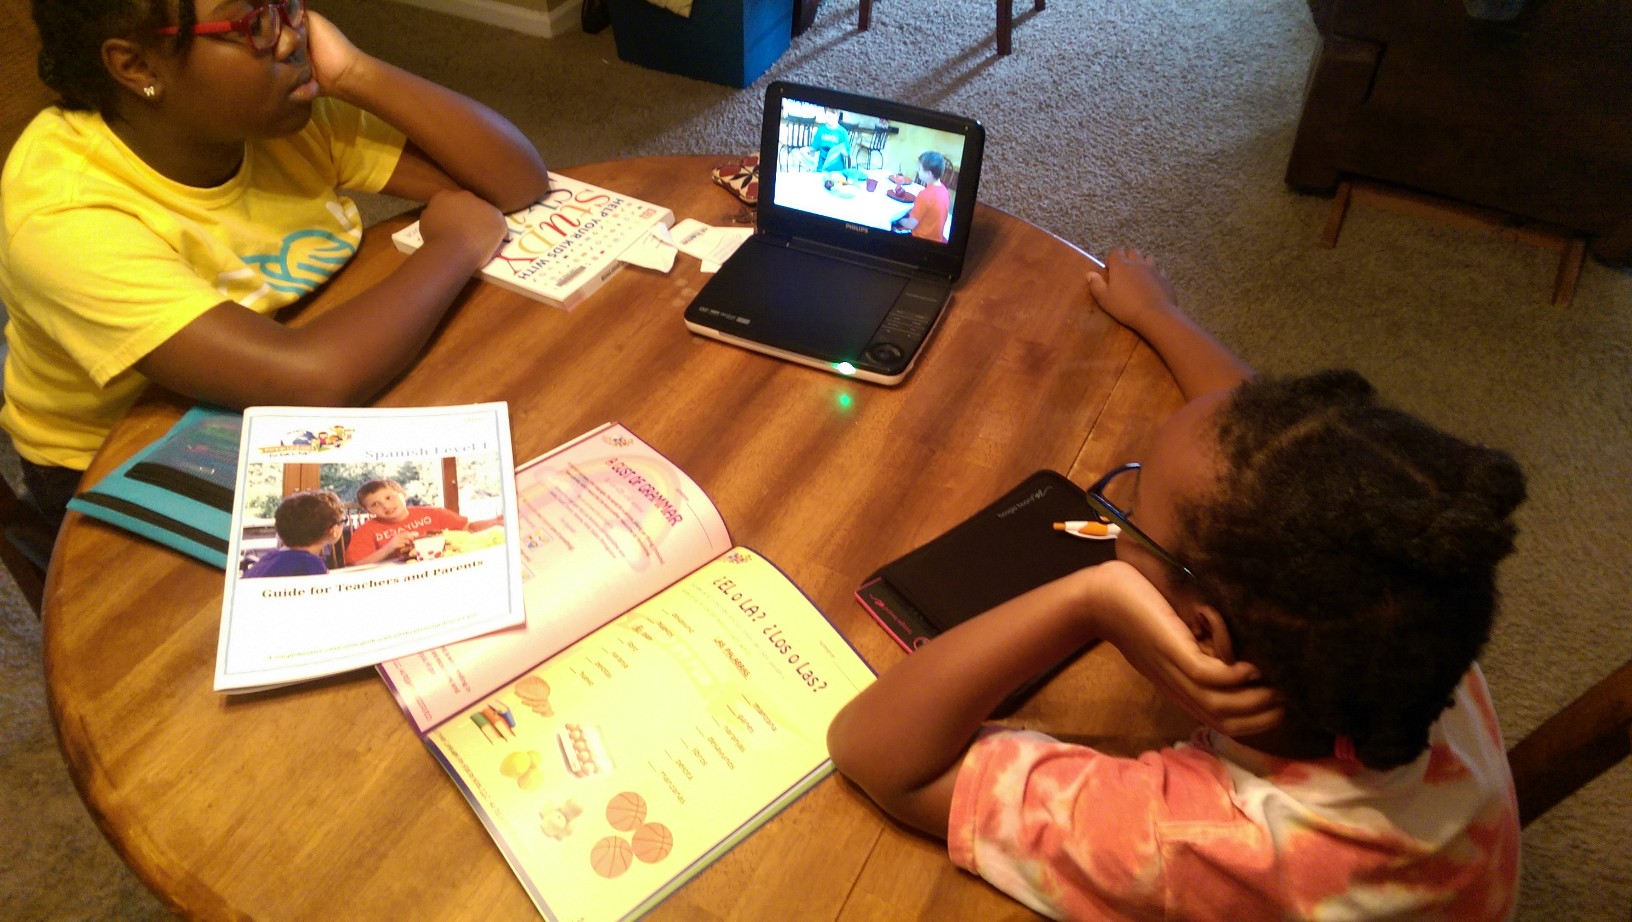 Spanish with Foreign Language for Kids